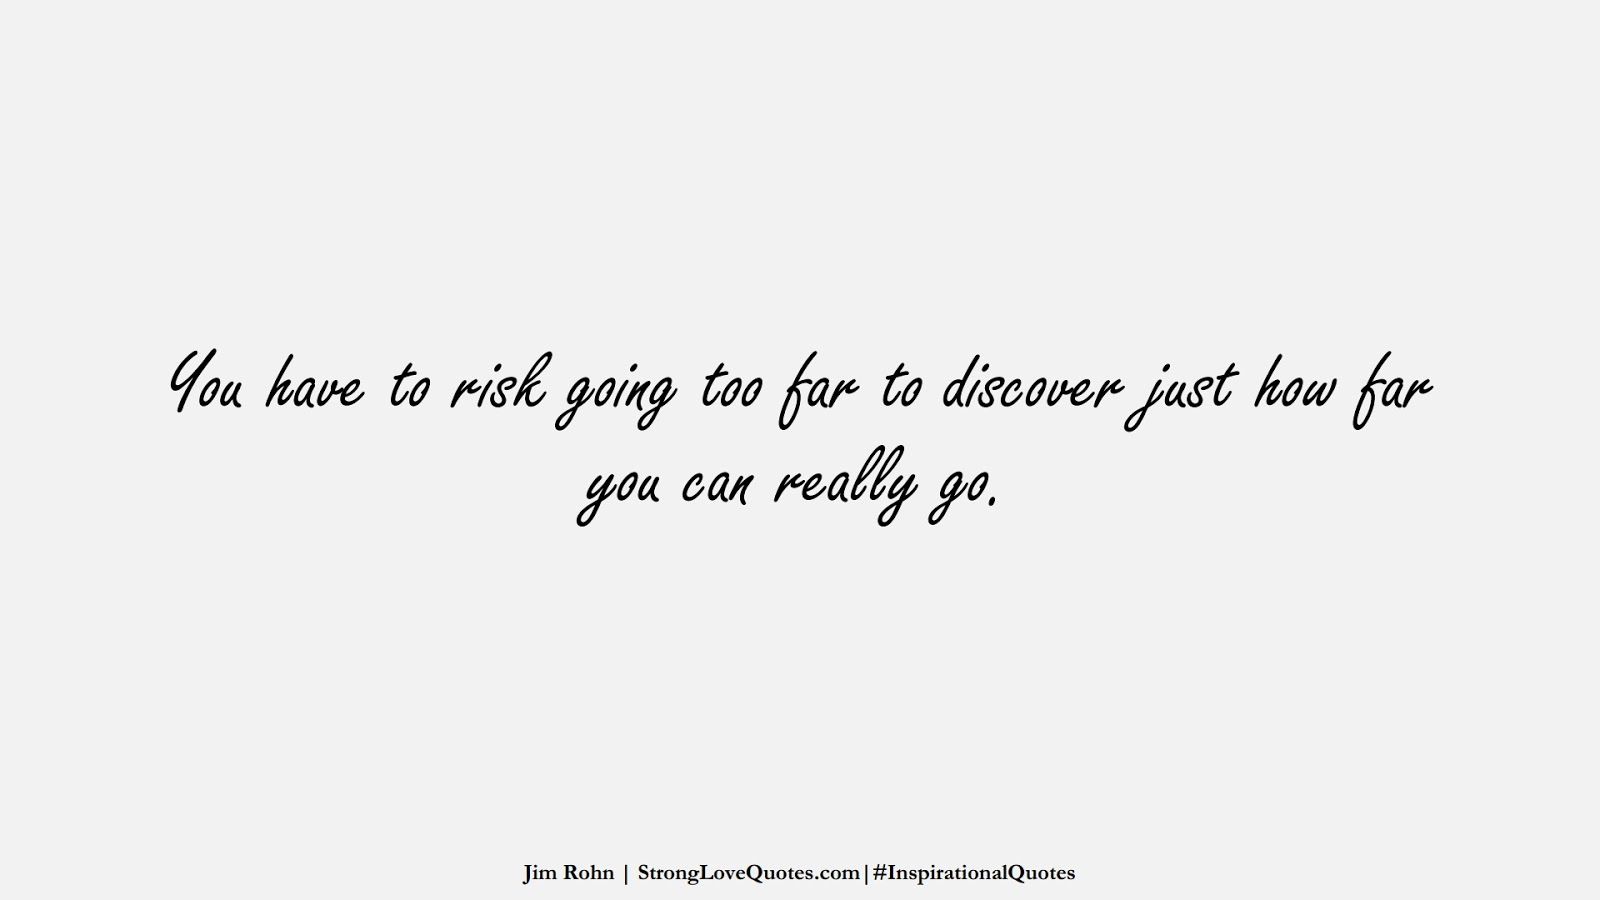 You have to risk going too far to discover just how far you can really go. (Jim Rohn);  #InspirationalQuotes